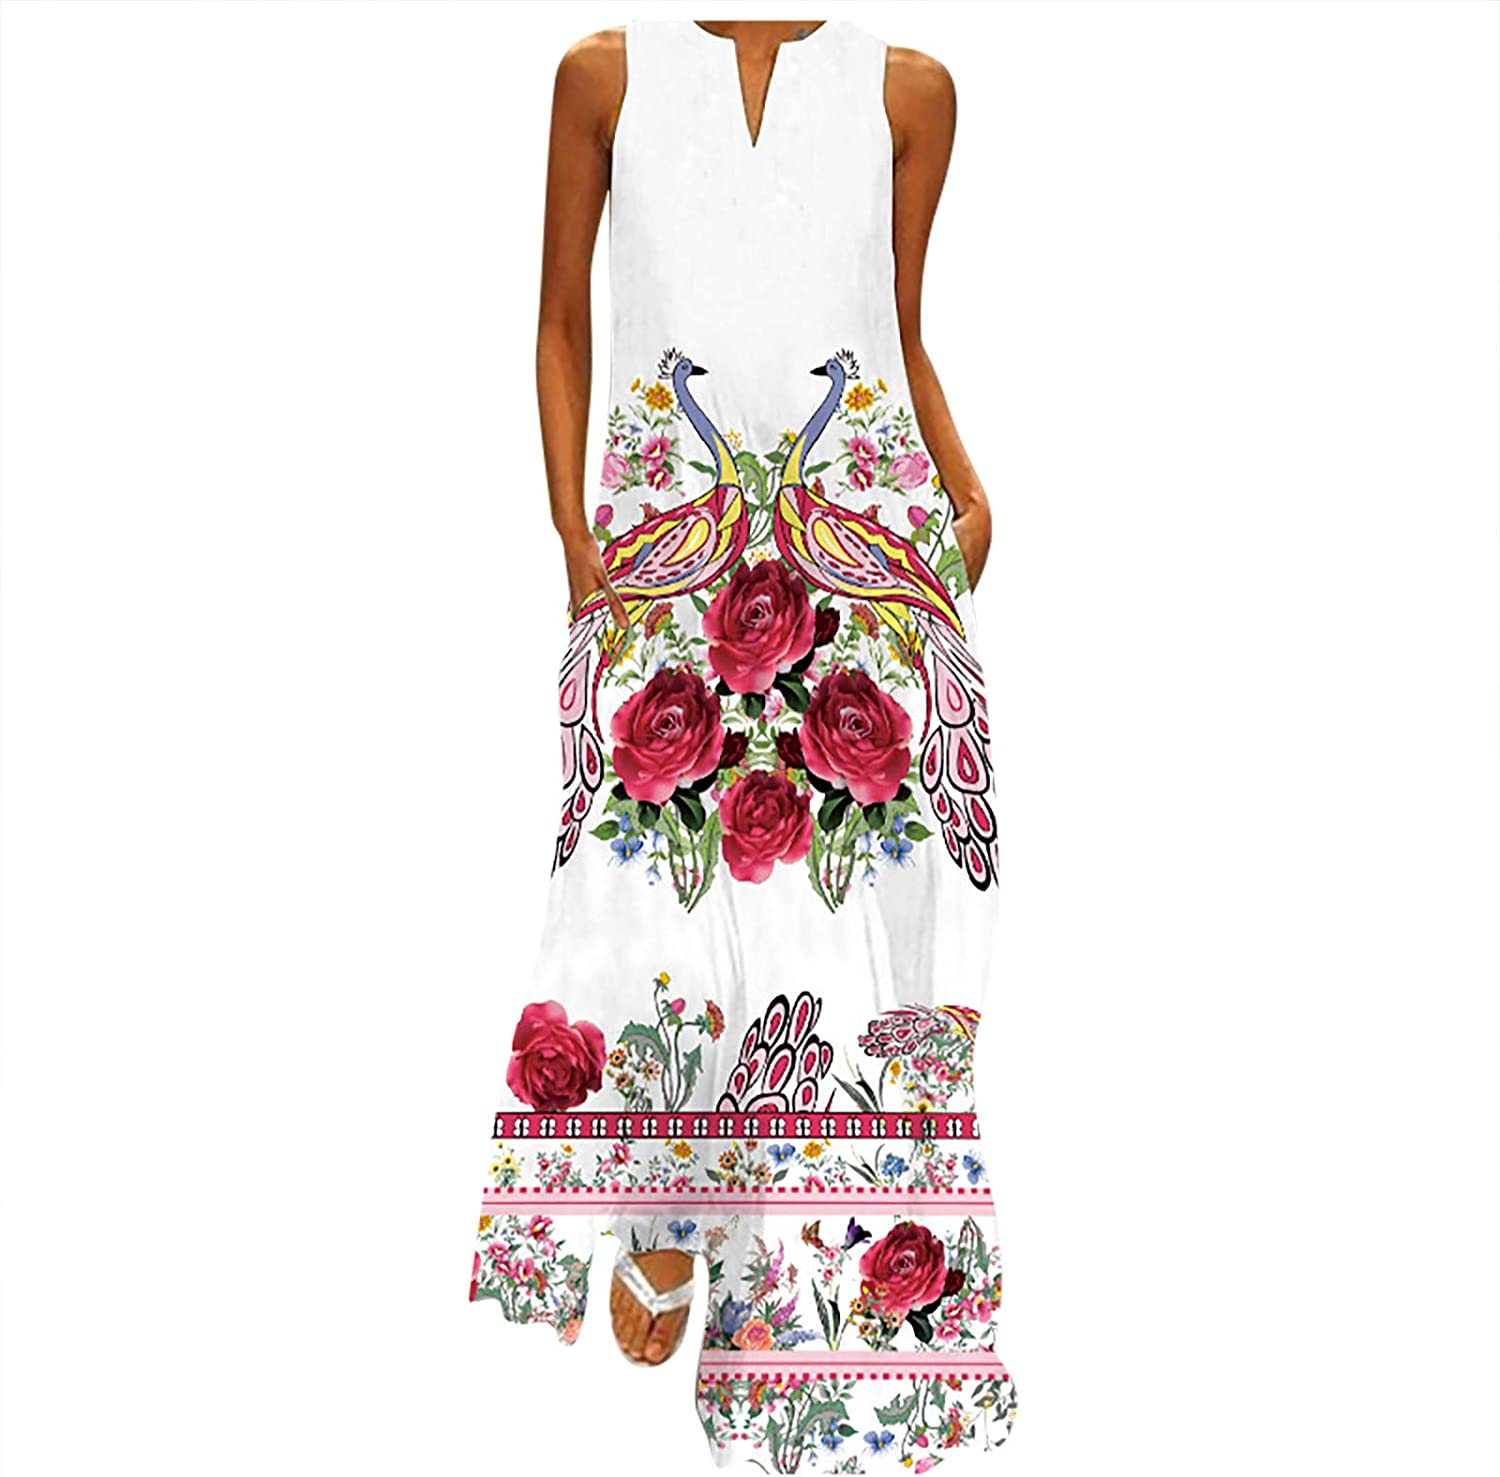 2020 Summer Long Dress for Womens Mlide Tank Top Sunflower Print V-Neck Beach Loose Dress Party Fashion V-Neck Gown